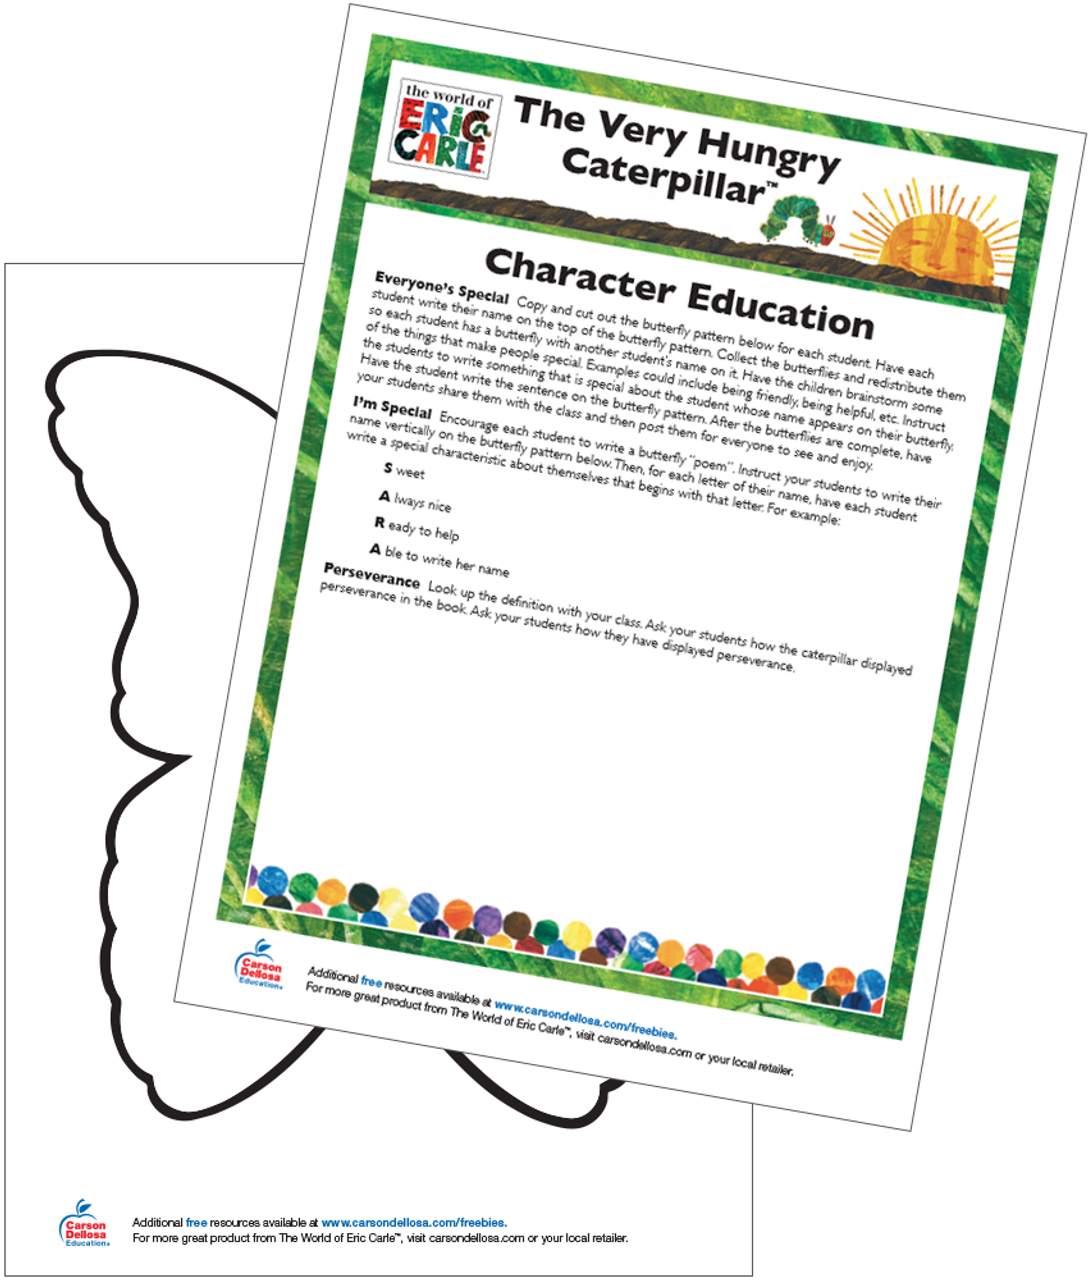 picture relating to The Very Hungry Caterpillar Printable Book identified as The Rather Hungry Caterpillar Identity Schooling Cost-free